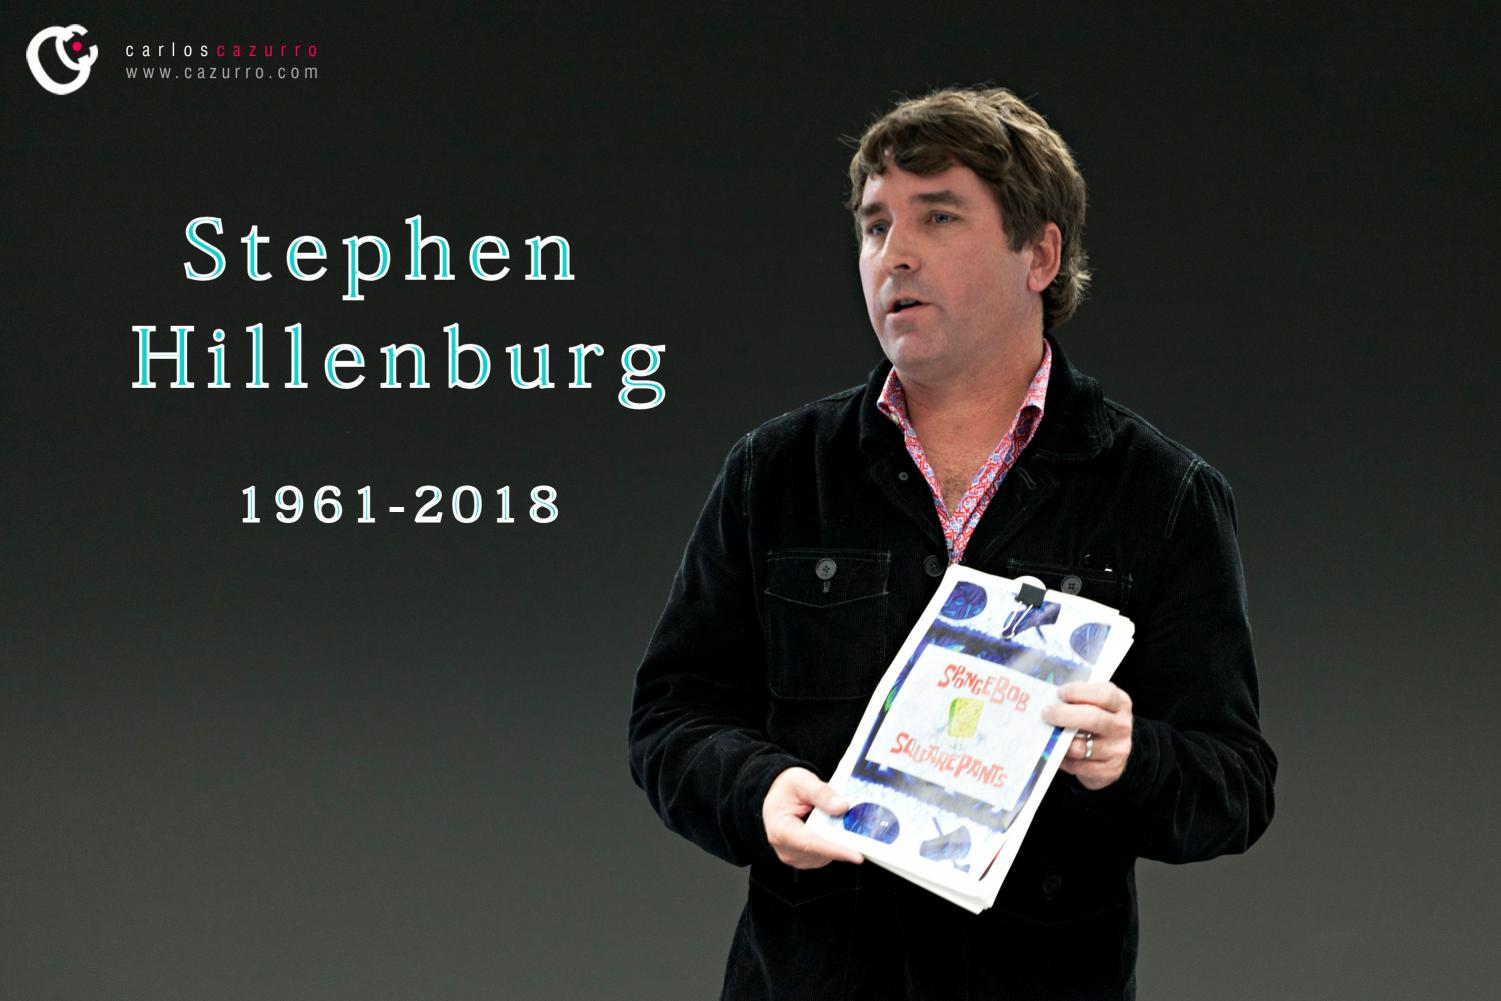 Stephen Hillenburg, the creator of Spongebob, passed away recently.